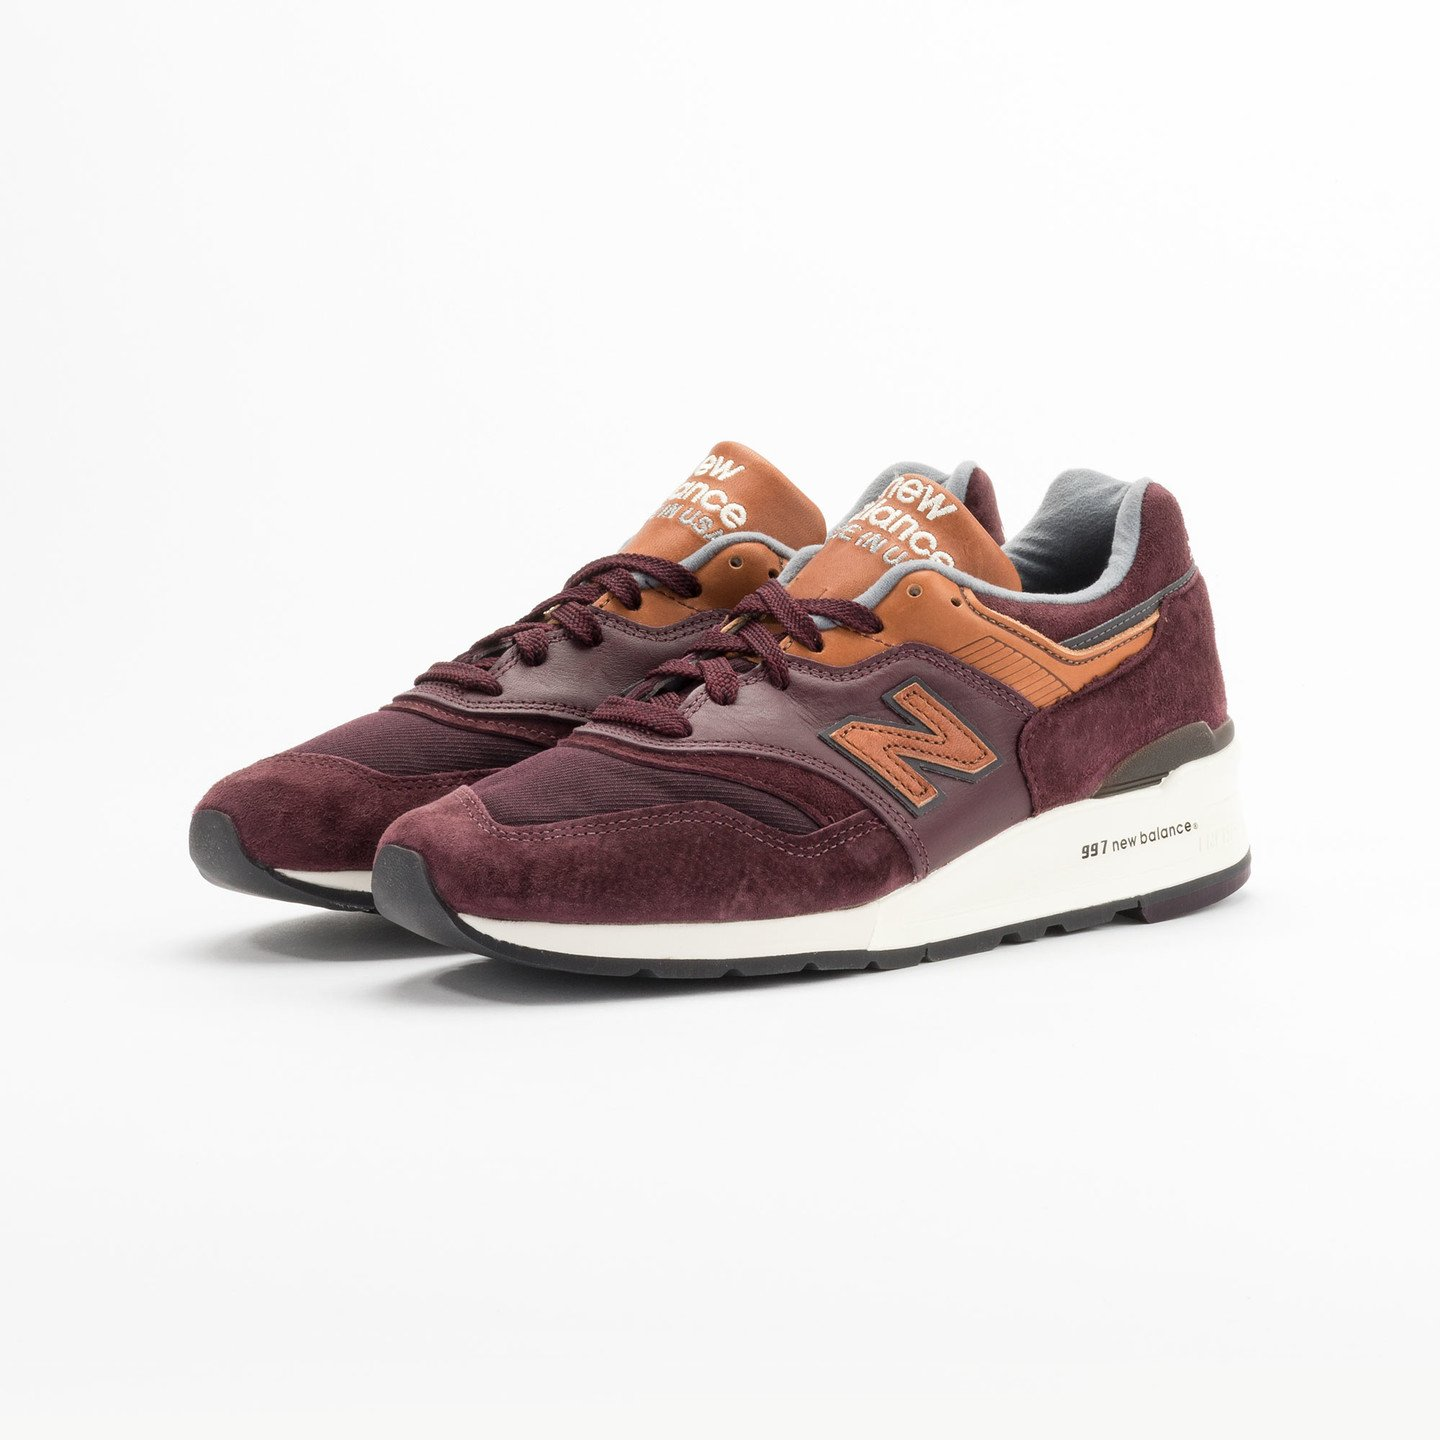 New Balance M997 Made in USA Burgundy / Light Brown M997DSLR-42.5